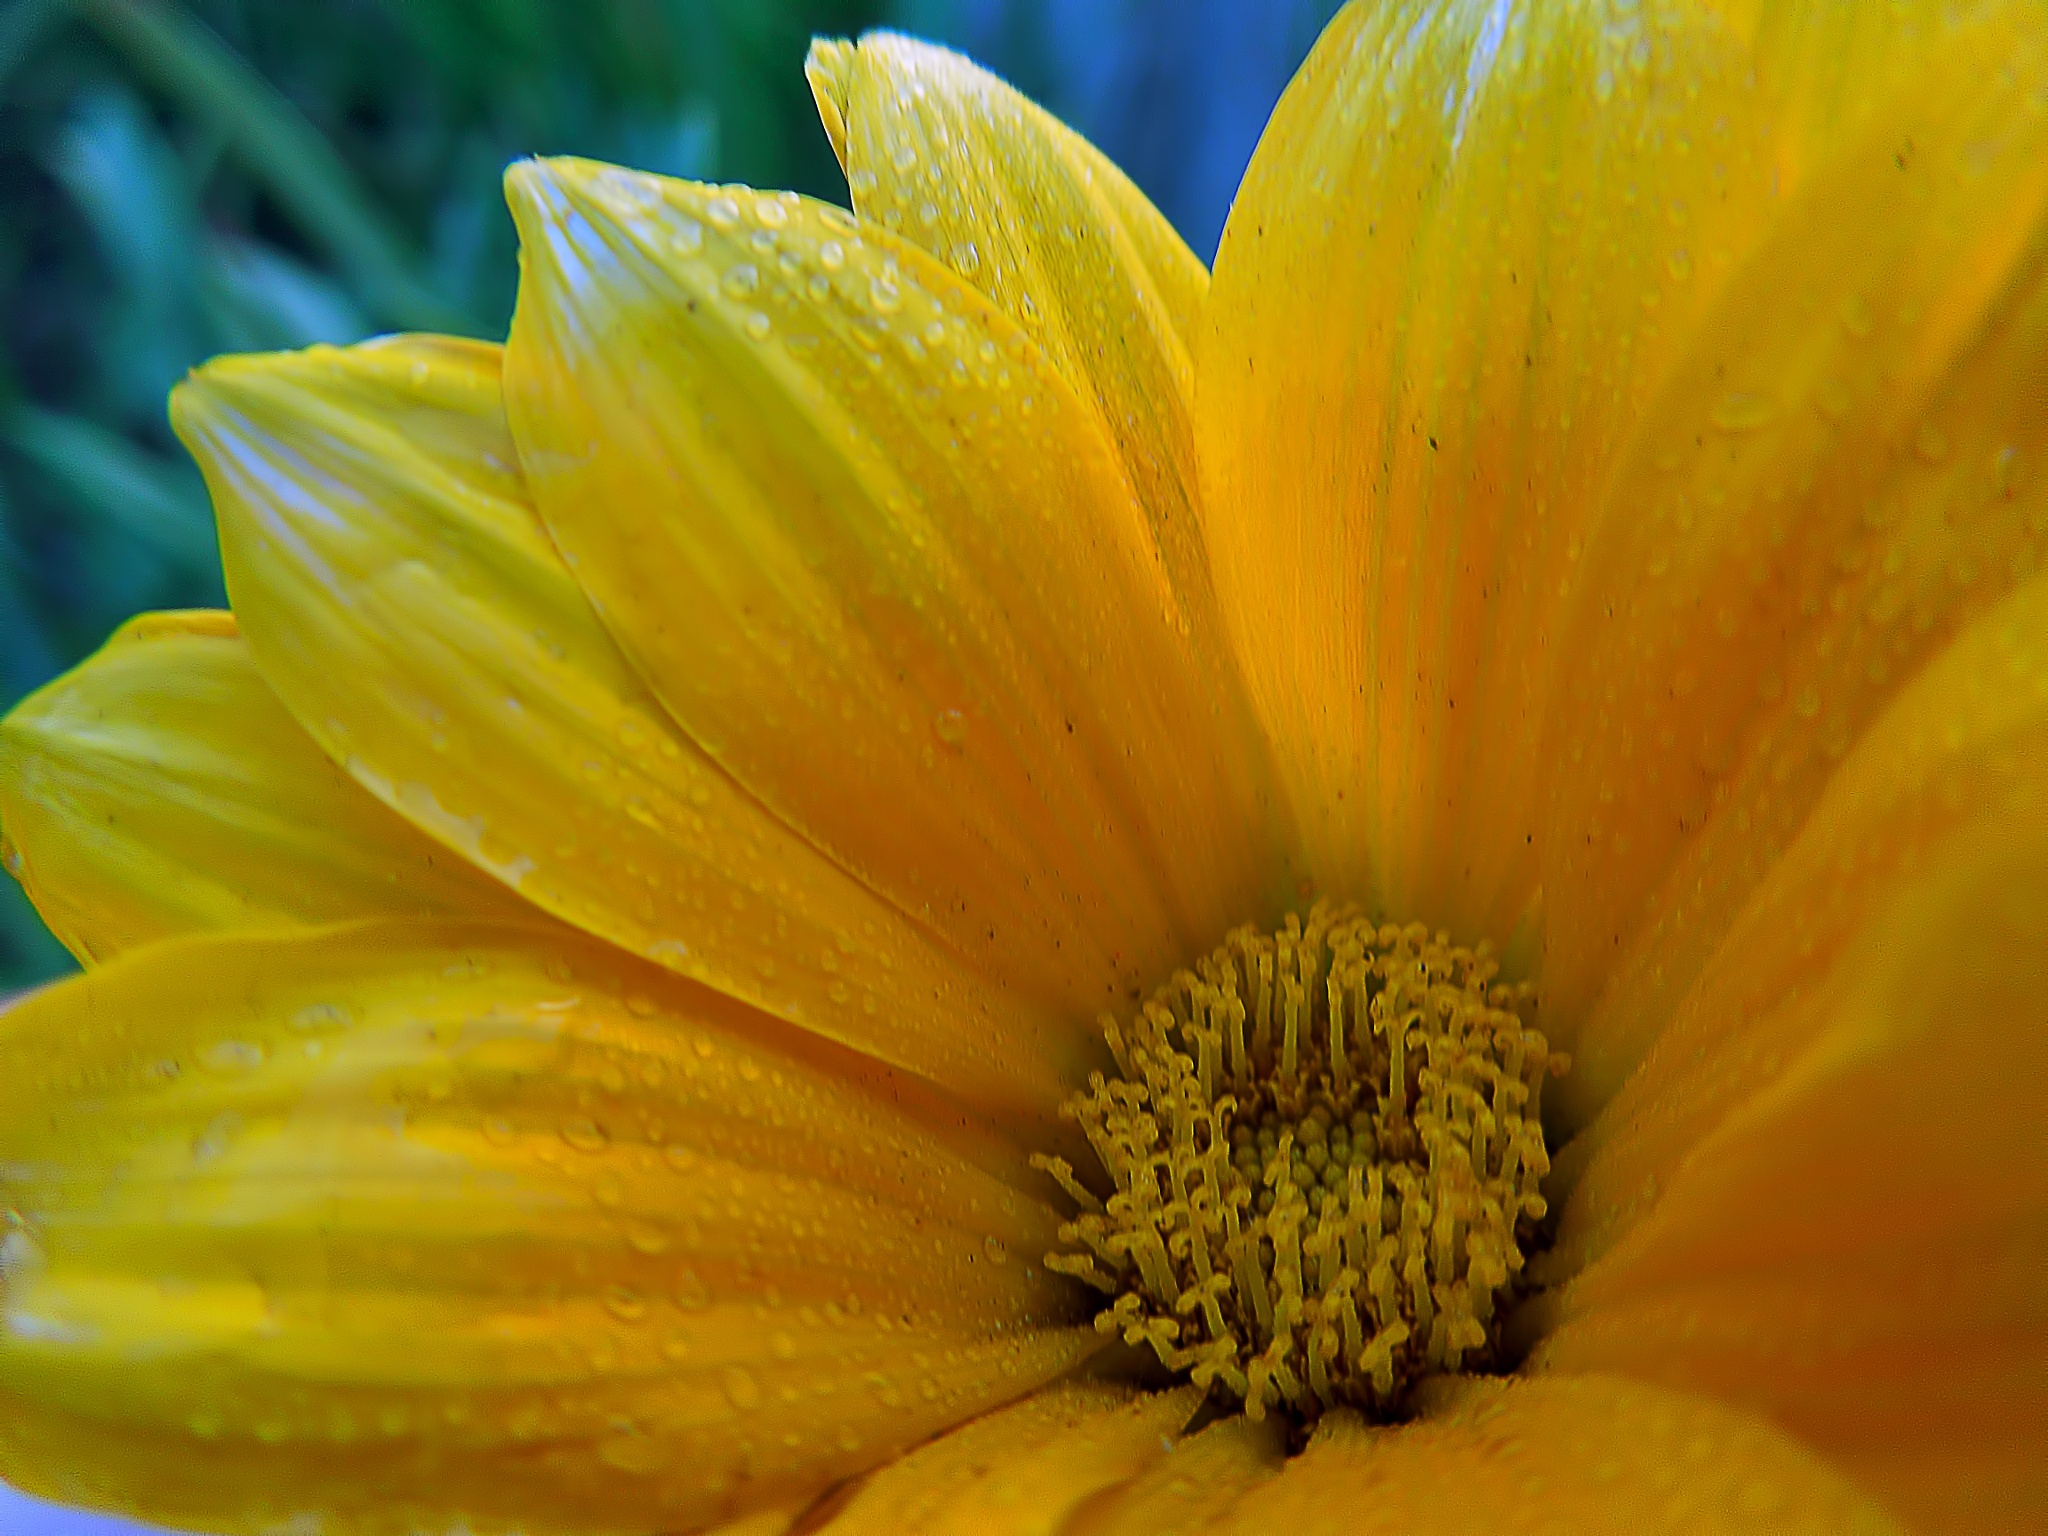 A closer look at the flower by AymanMuhammad